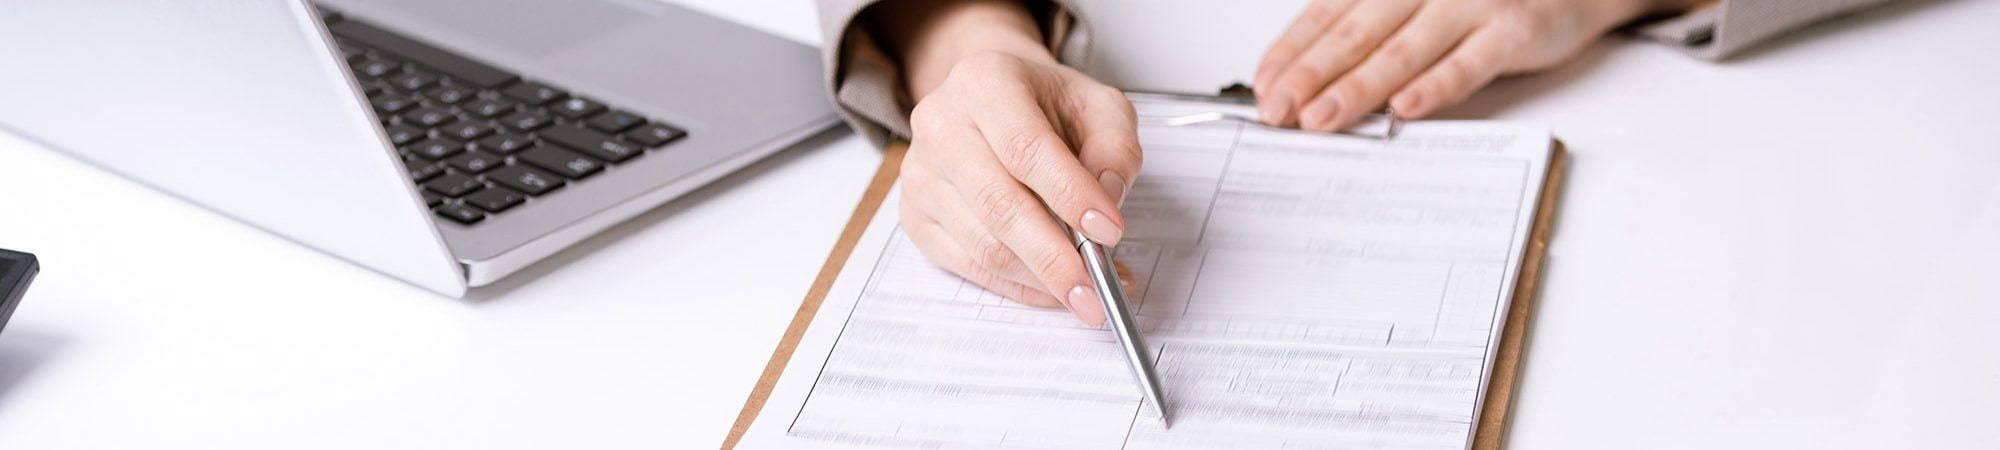 Policies Header Image - Woman with pen pointing to document